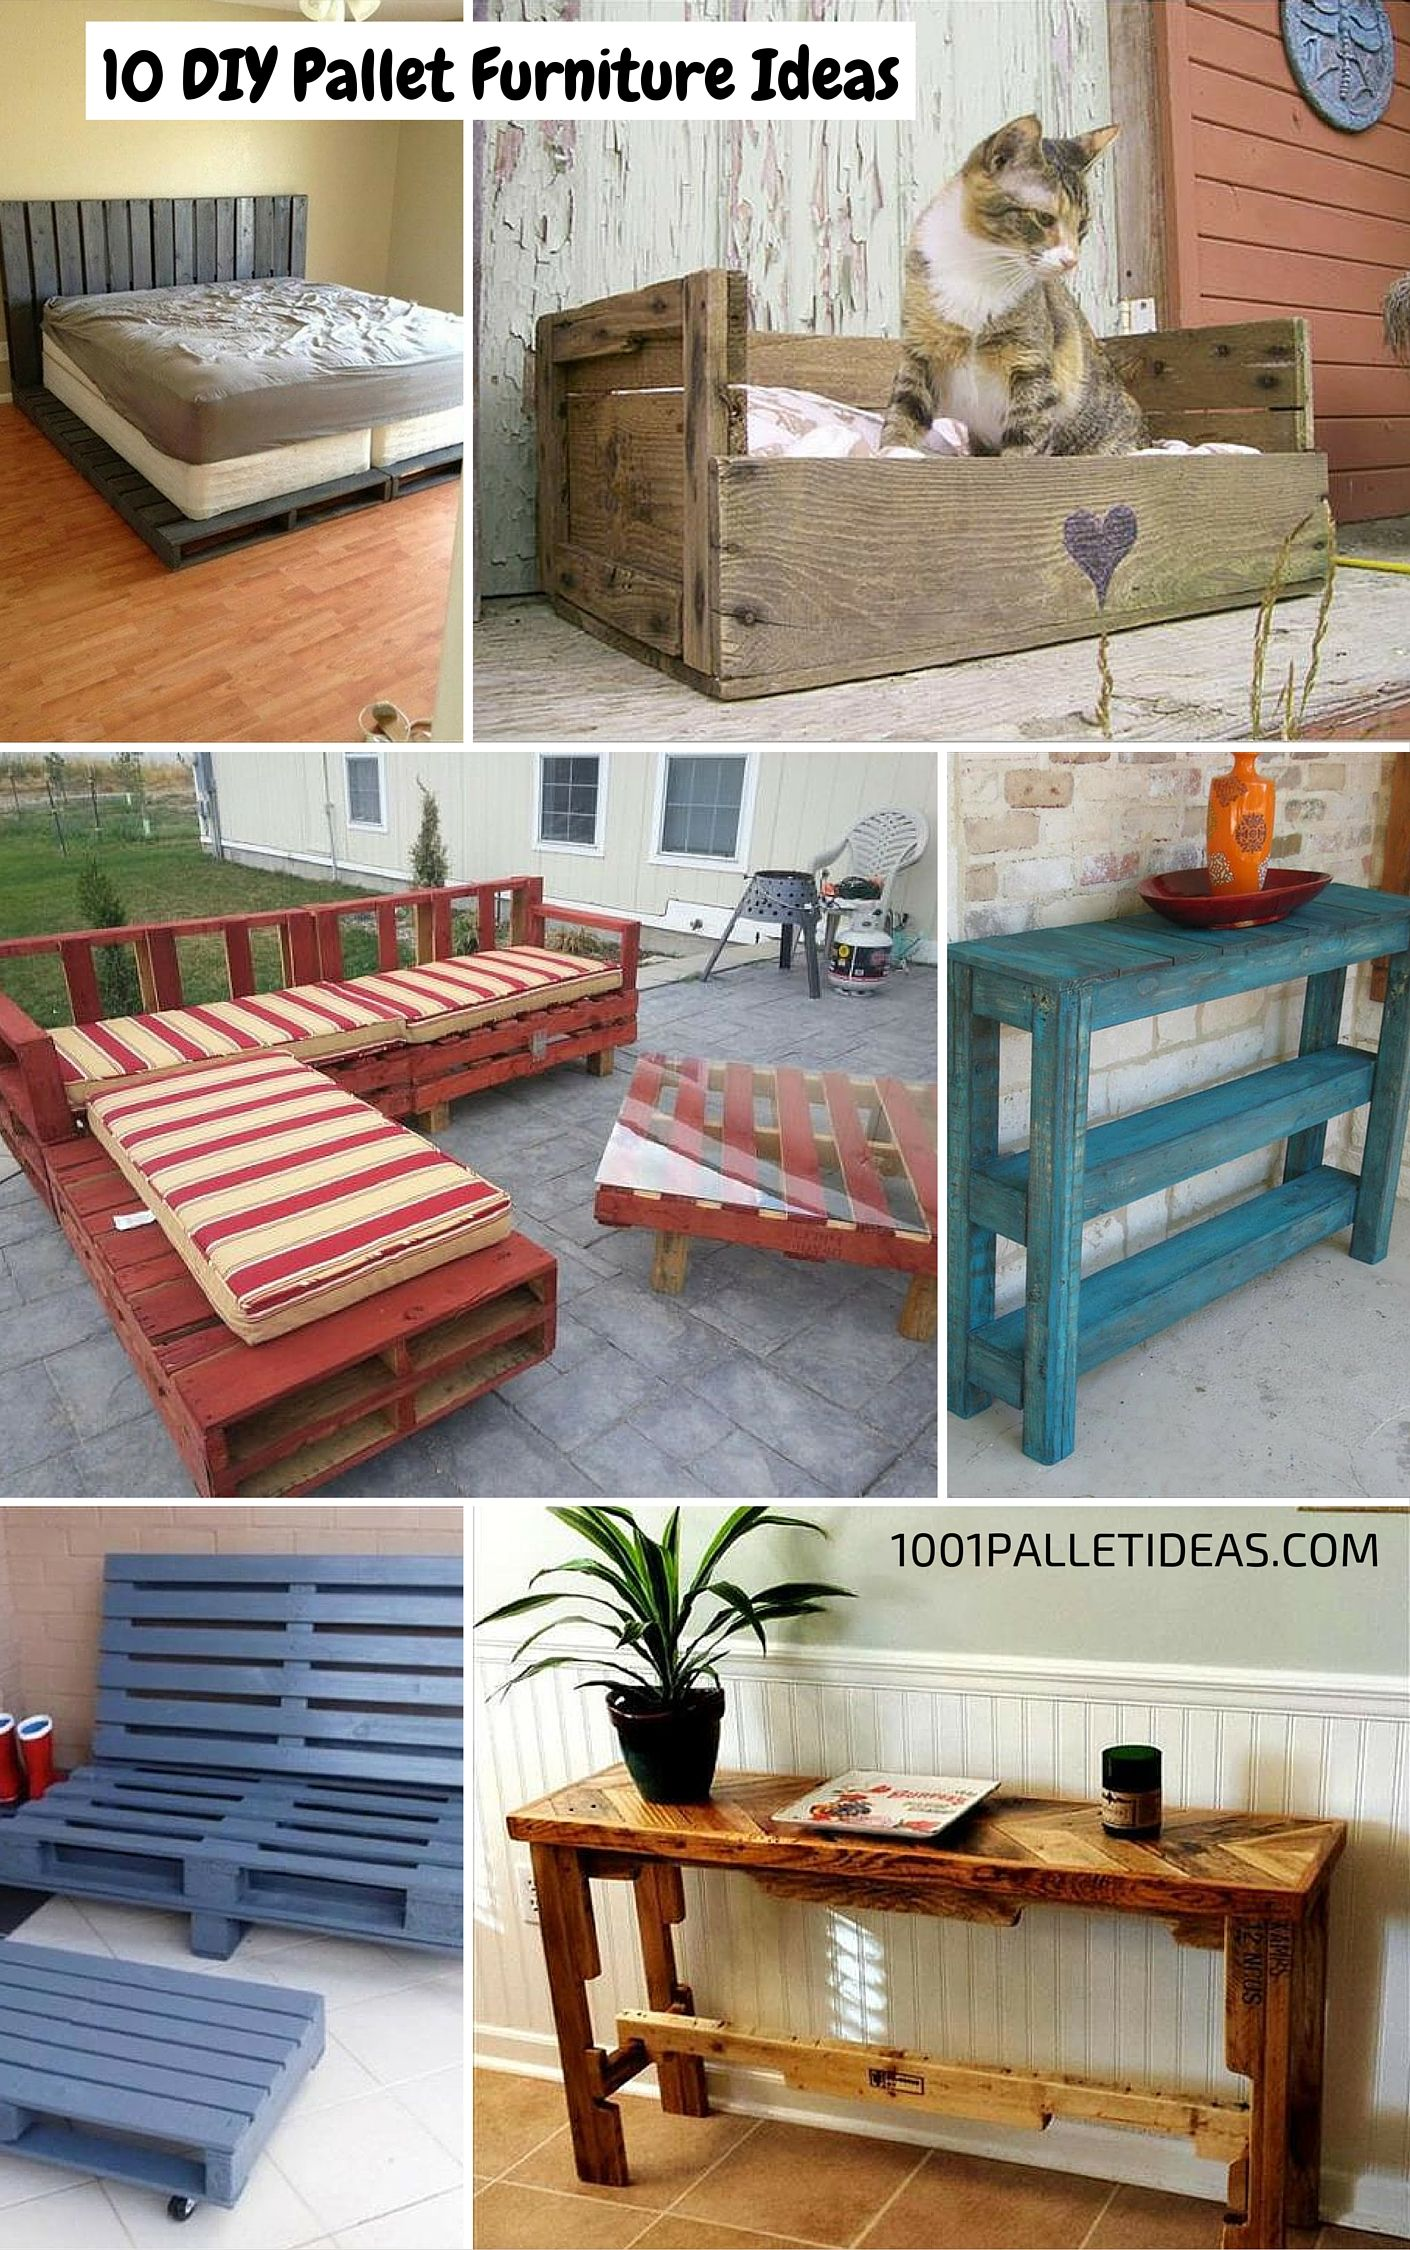 10 Diy Pallet Furniture Ideas Diy Pallet Furniture Wood Pallet